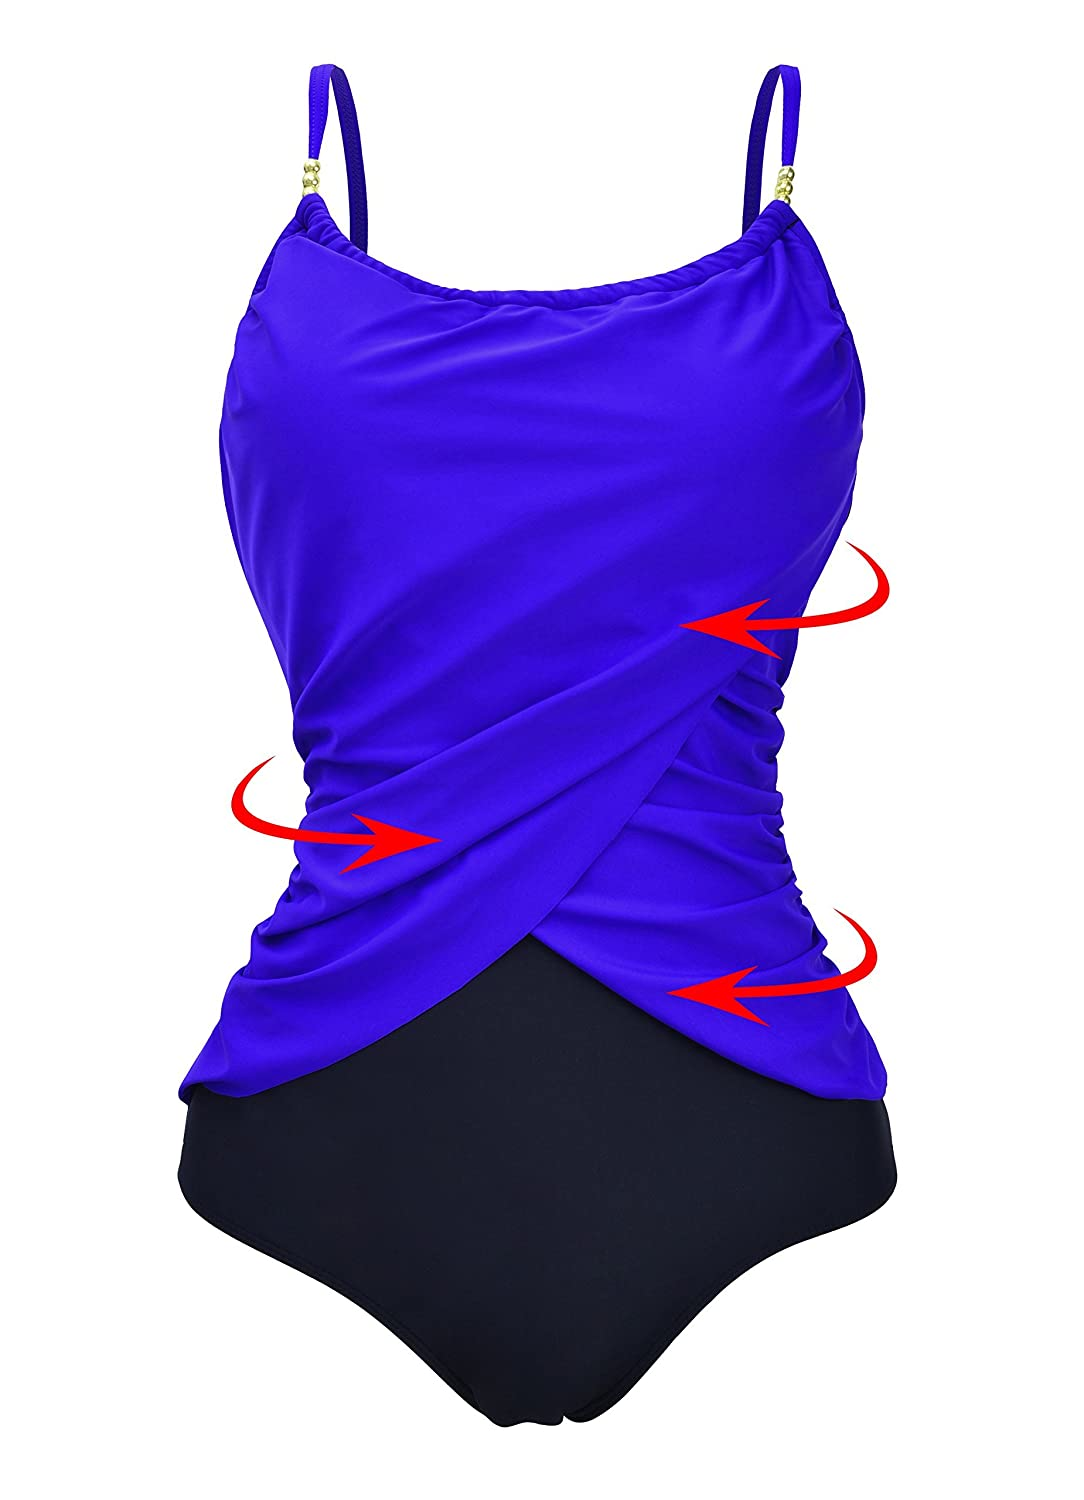 804caf42c6bbd Amazon.com  Zando Swimsuits for Women Plus Size Vintage Color Splicing  Swimwear Tummy Control One Piece Bathing Suits  Clothing